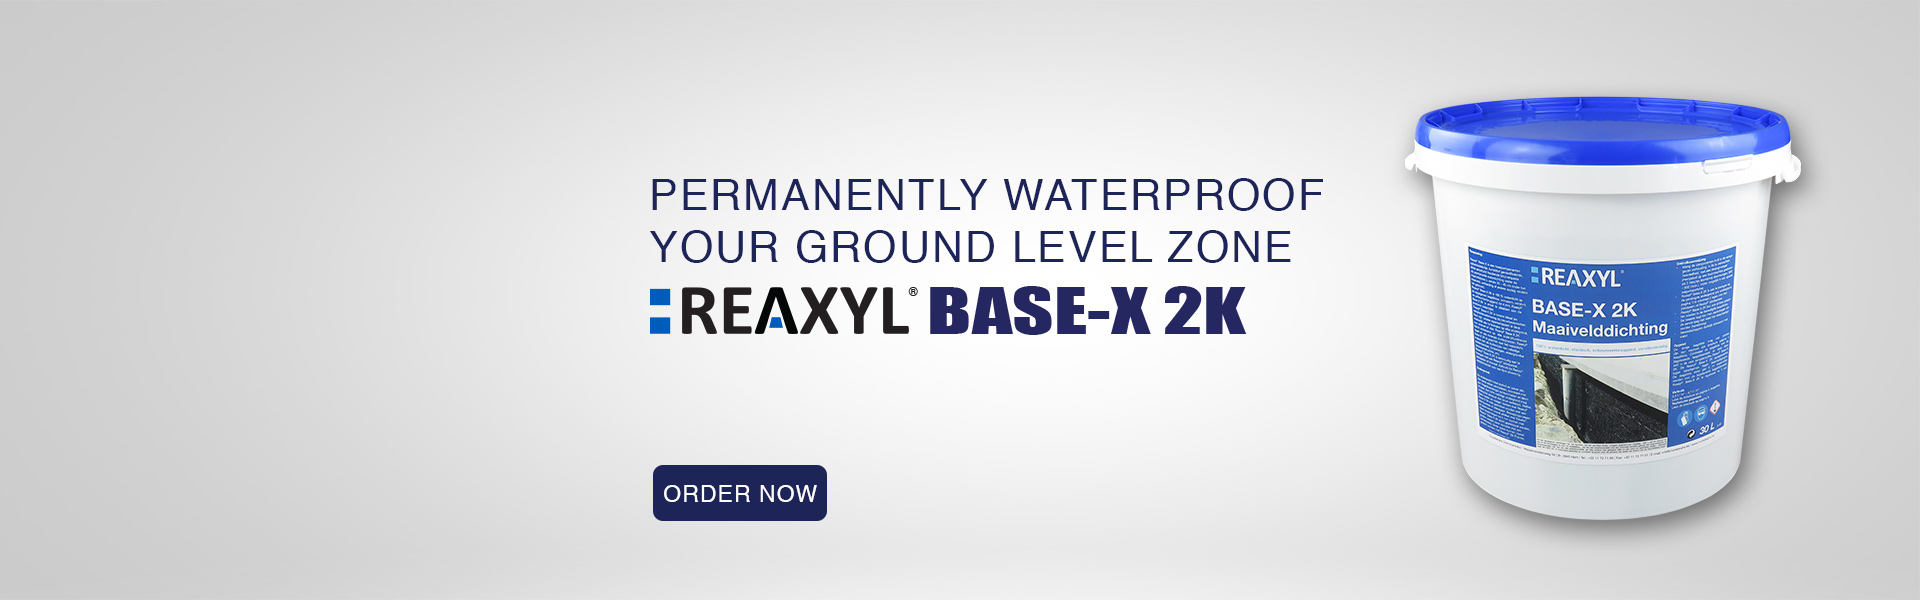 Reaxyl Base-X 2K